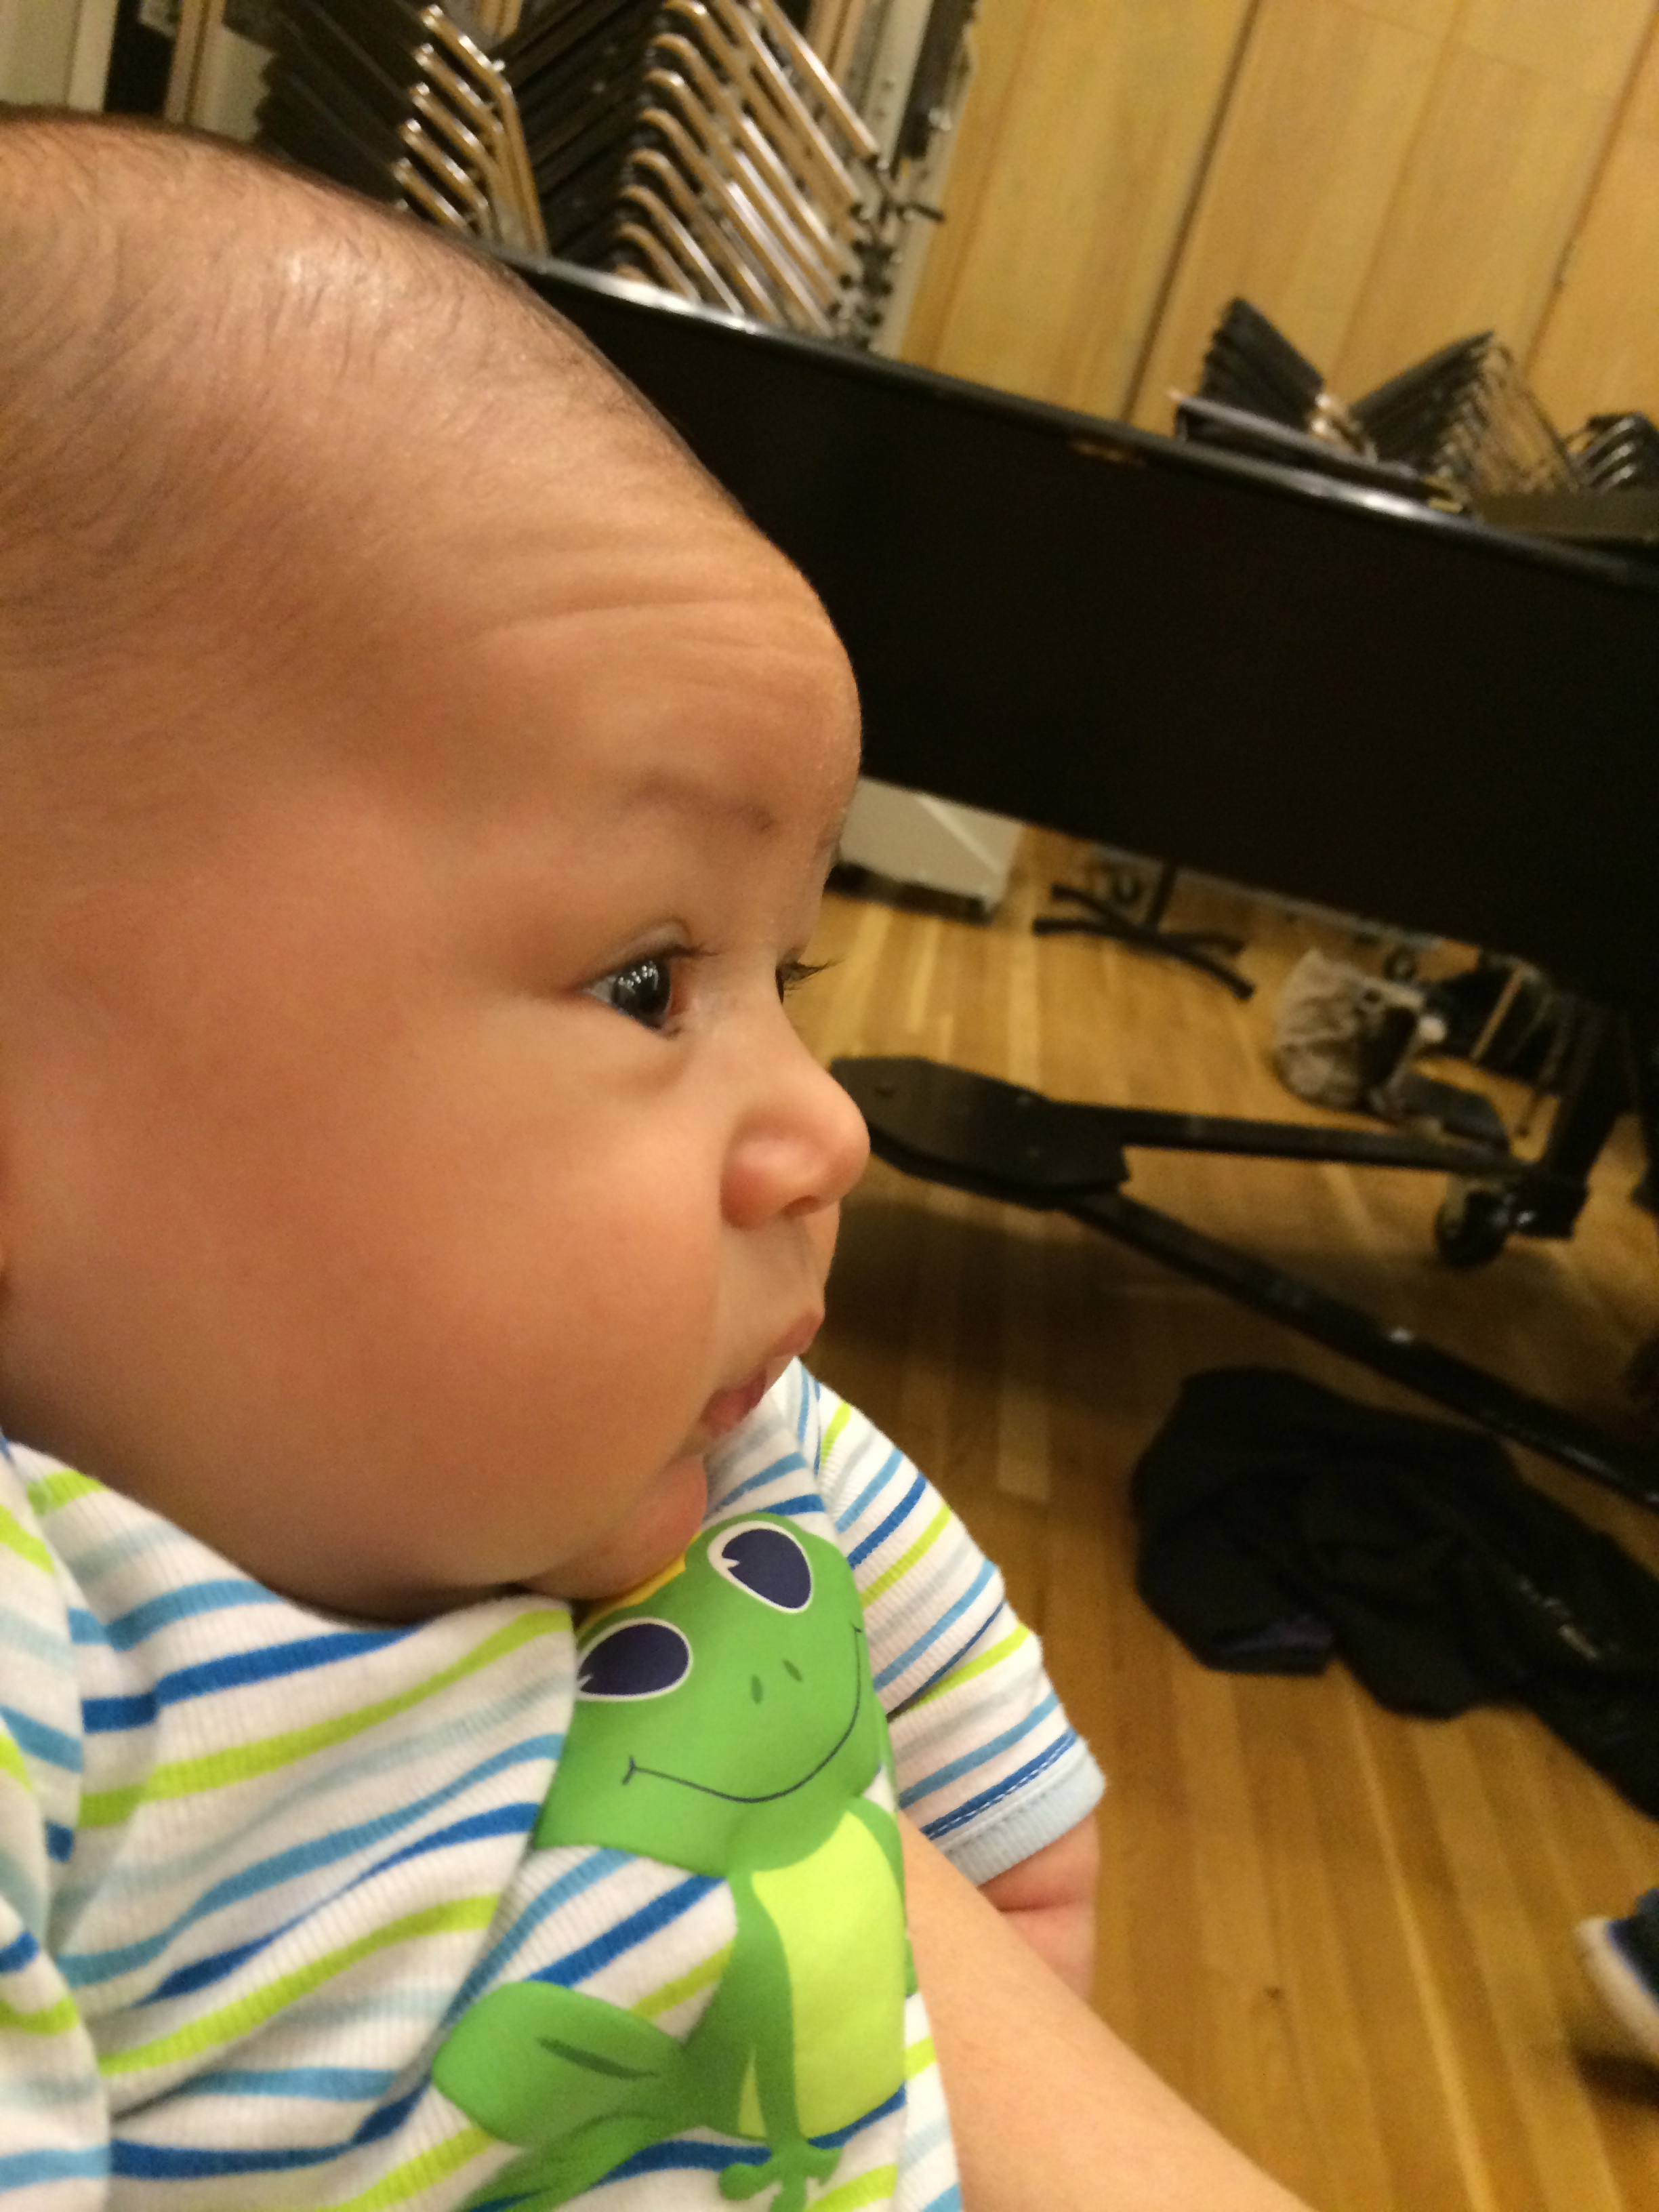 (Photo: my son Will, mesmerized at his first choral rehearsal, November 2014)